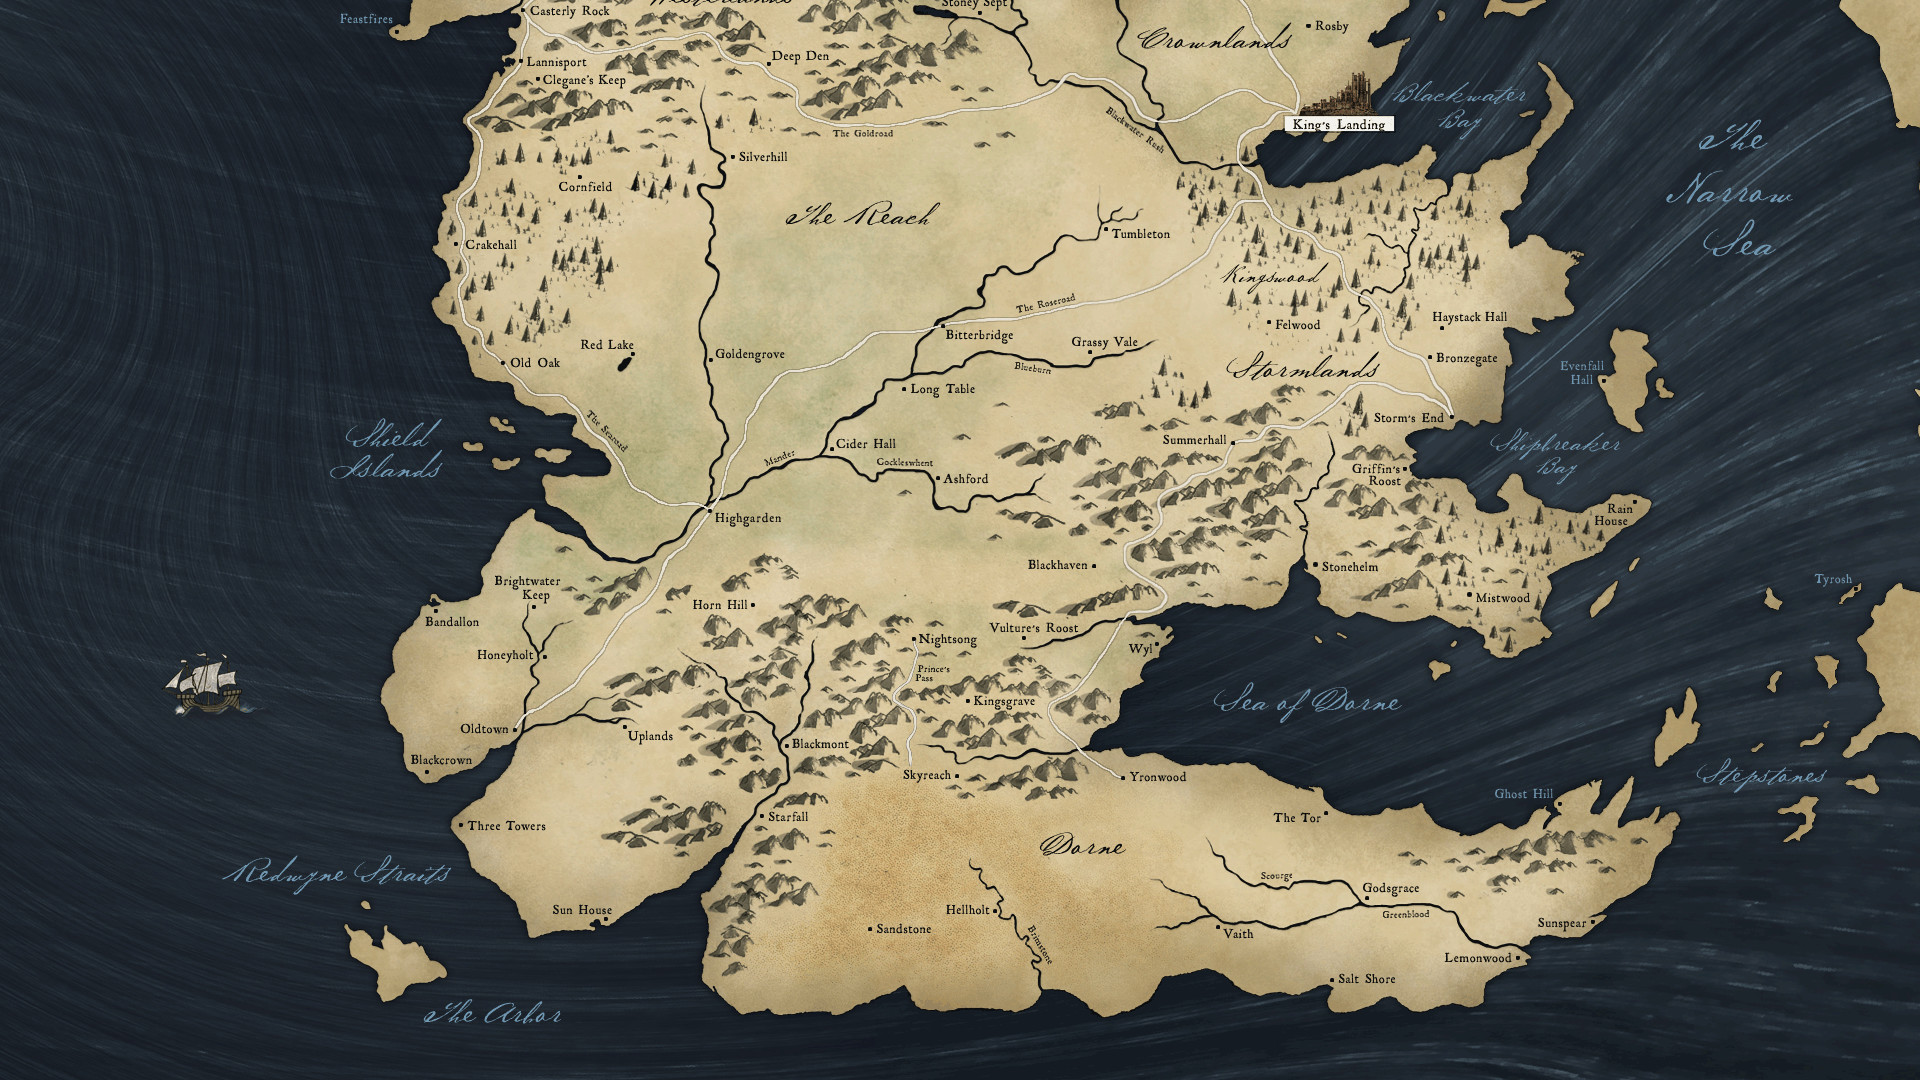 Map of Westeros Wallpaper (51+ images) Game Of Thrones Map Book on wentworth prison scotland map, outlander book map, king of thrones map, world map, harry potter book map, the mysterious island book map, king of thorns map, gameof thrones map, walking dead map, under the dome book map, dothraki sea map, the game book map,